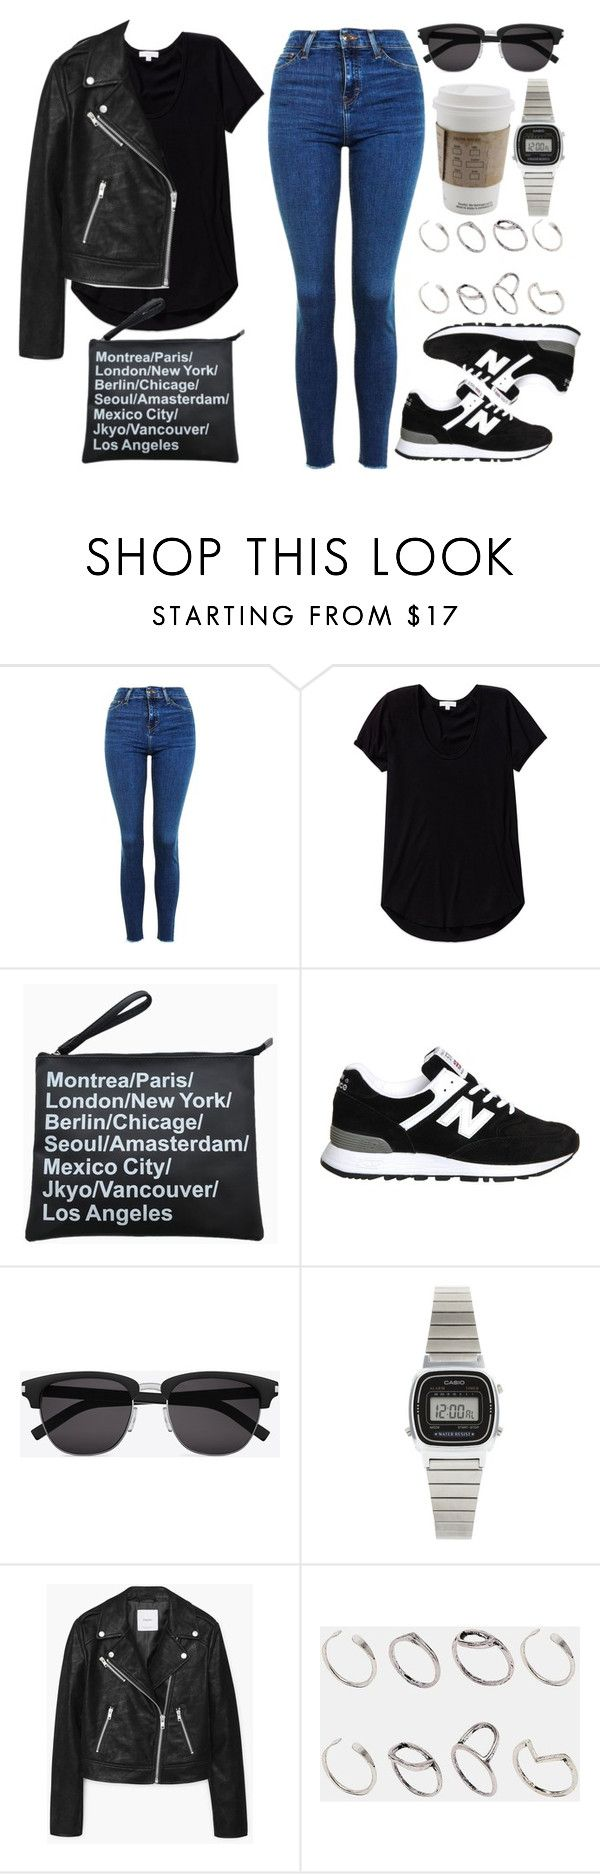 """""""Style #11325"""" by vany-alvarado ❤ liked on Polyvore featuring Topshop, Wilfred, New Balance, Yves Saint Laurent, Casio, MANGO and ASOS"""